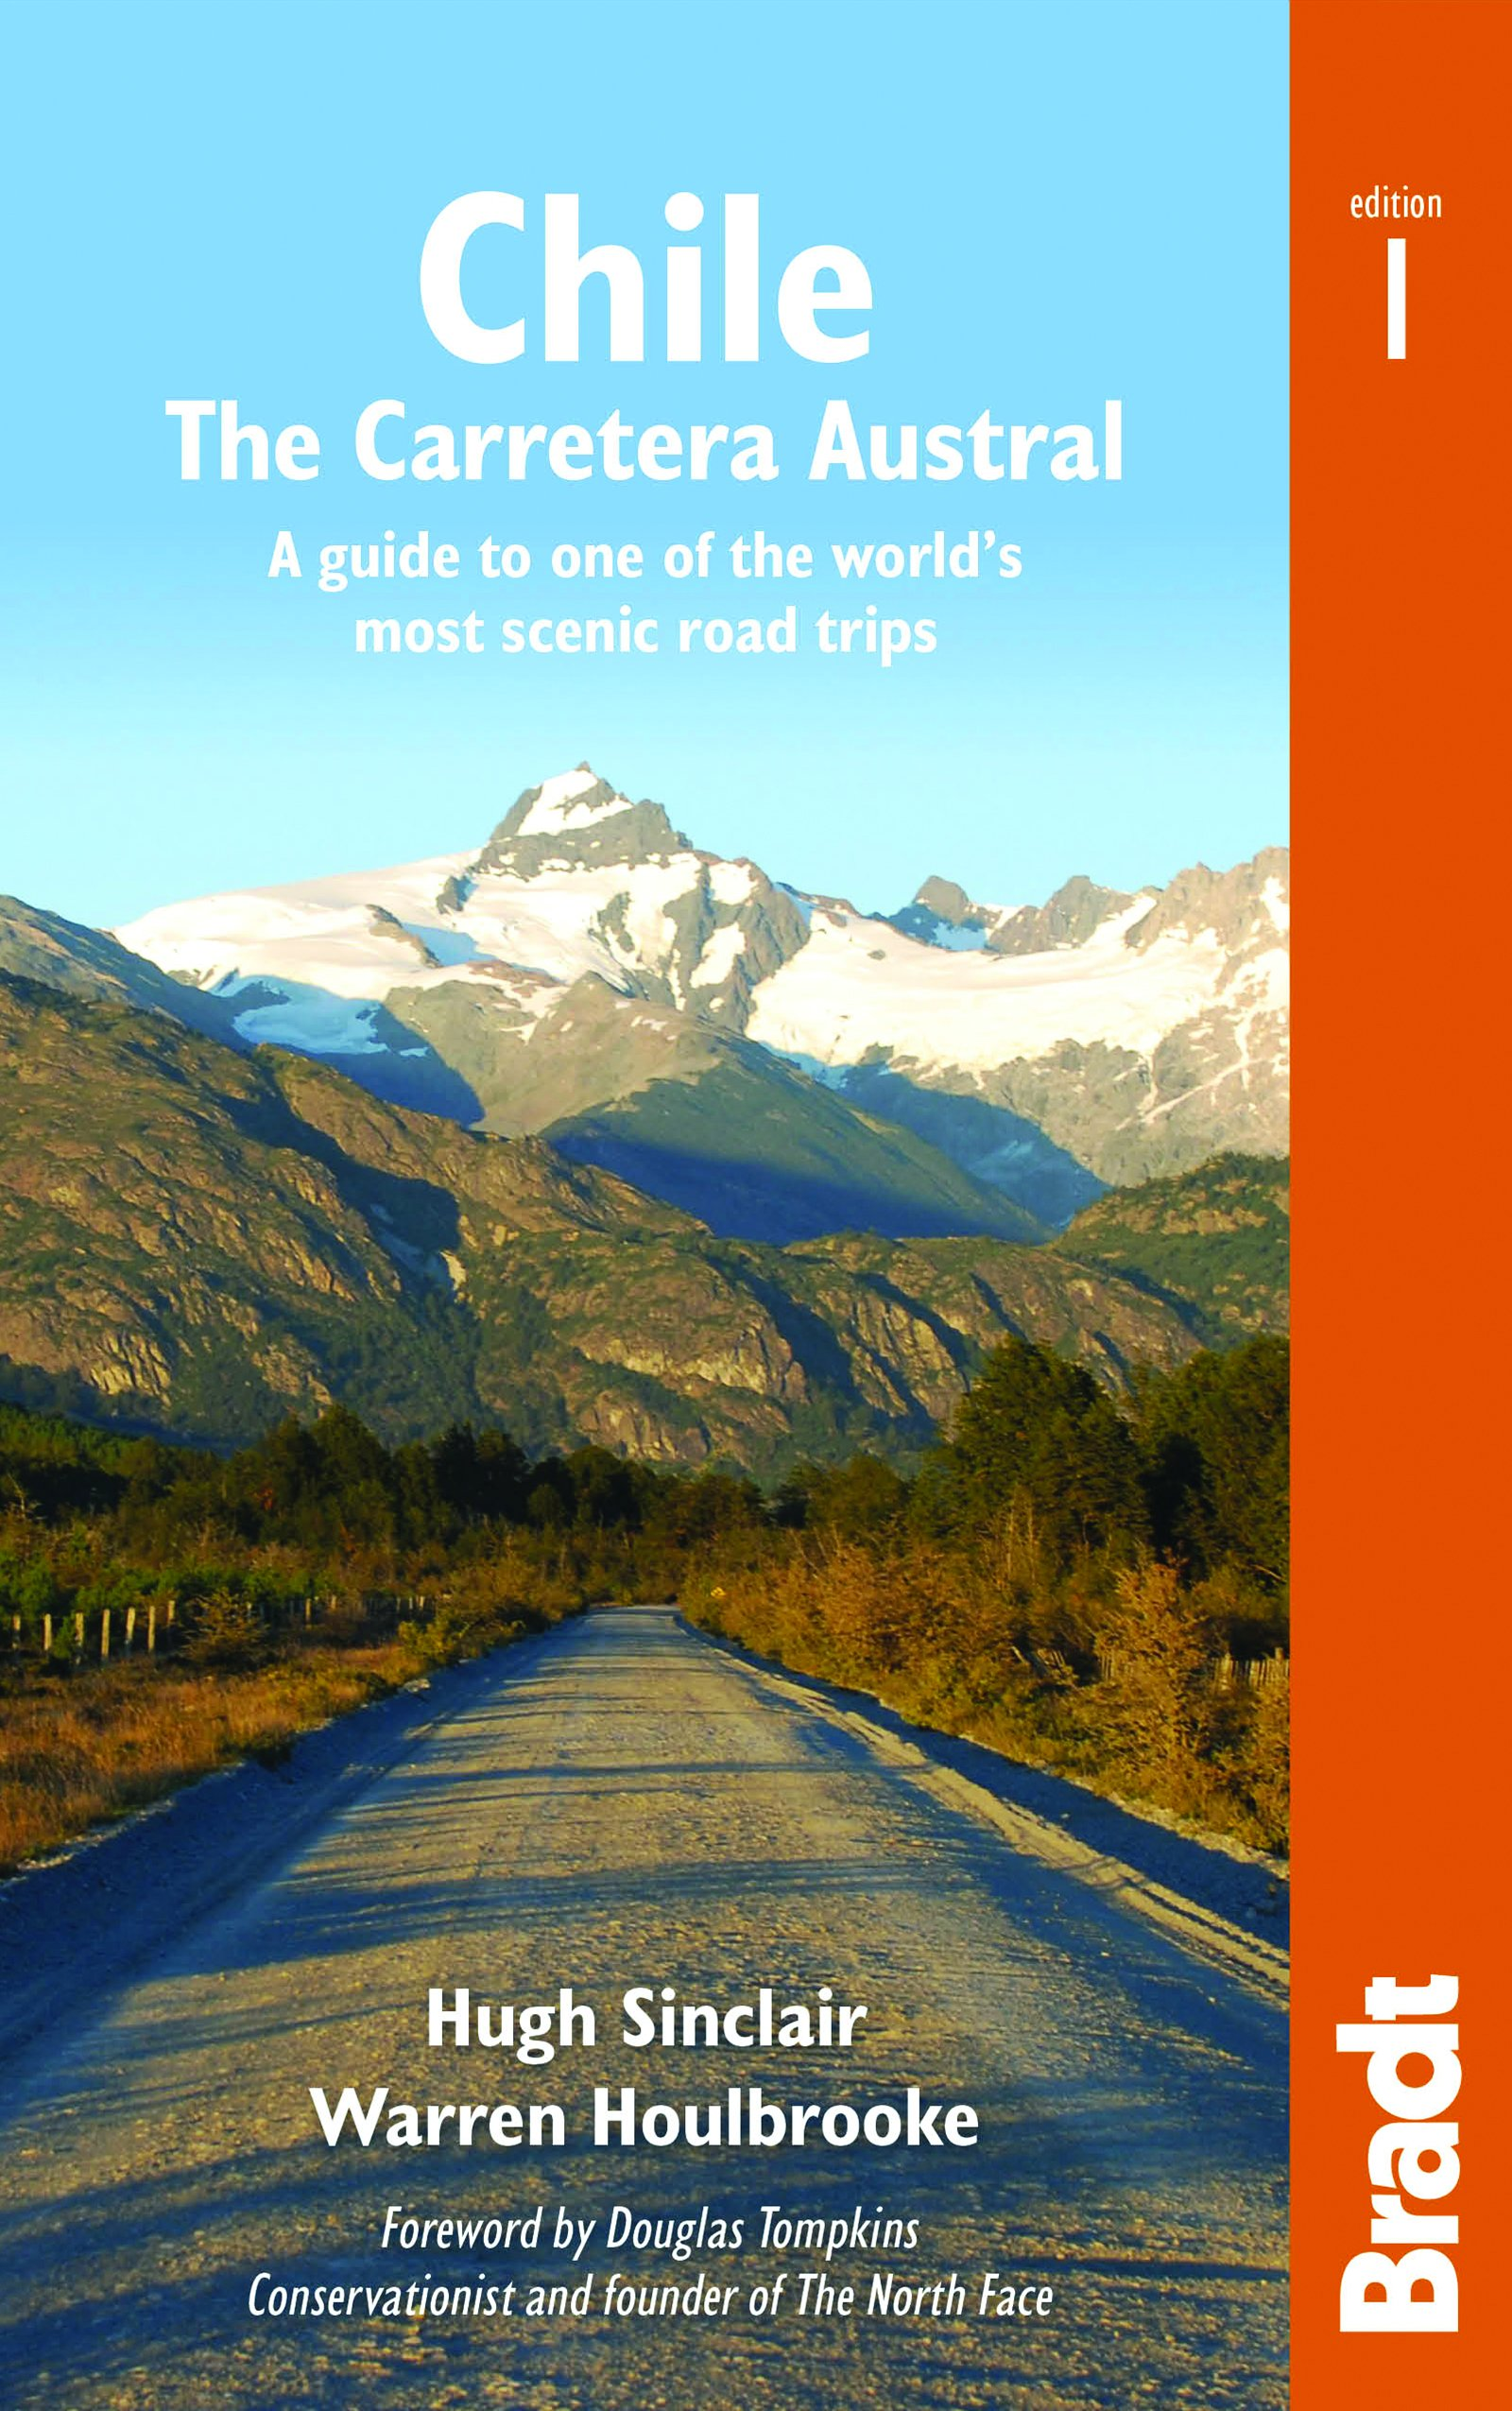 Chile  Carretera Austral  The Carretera Austral  A Guide To One Of The World's Most Scenic Road Trips  Bradt Country Guides